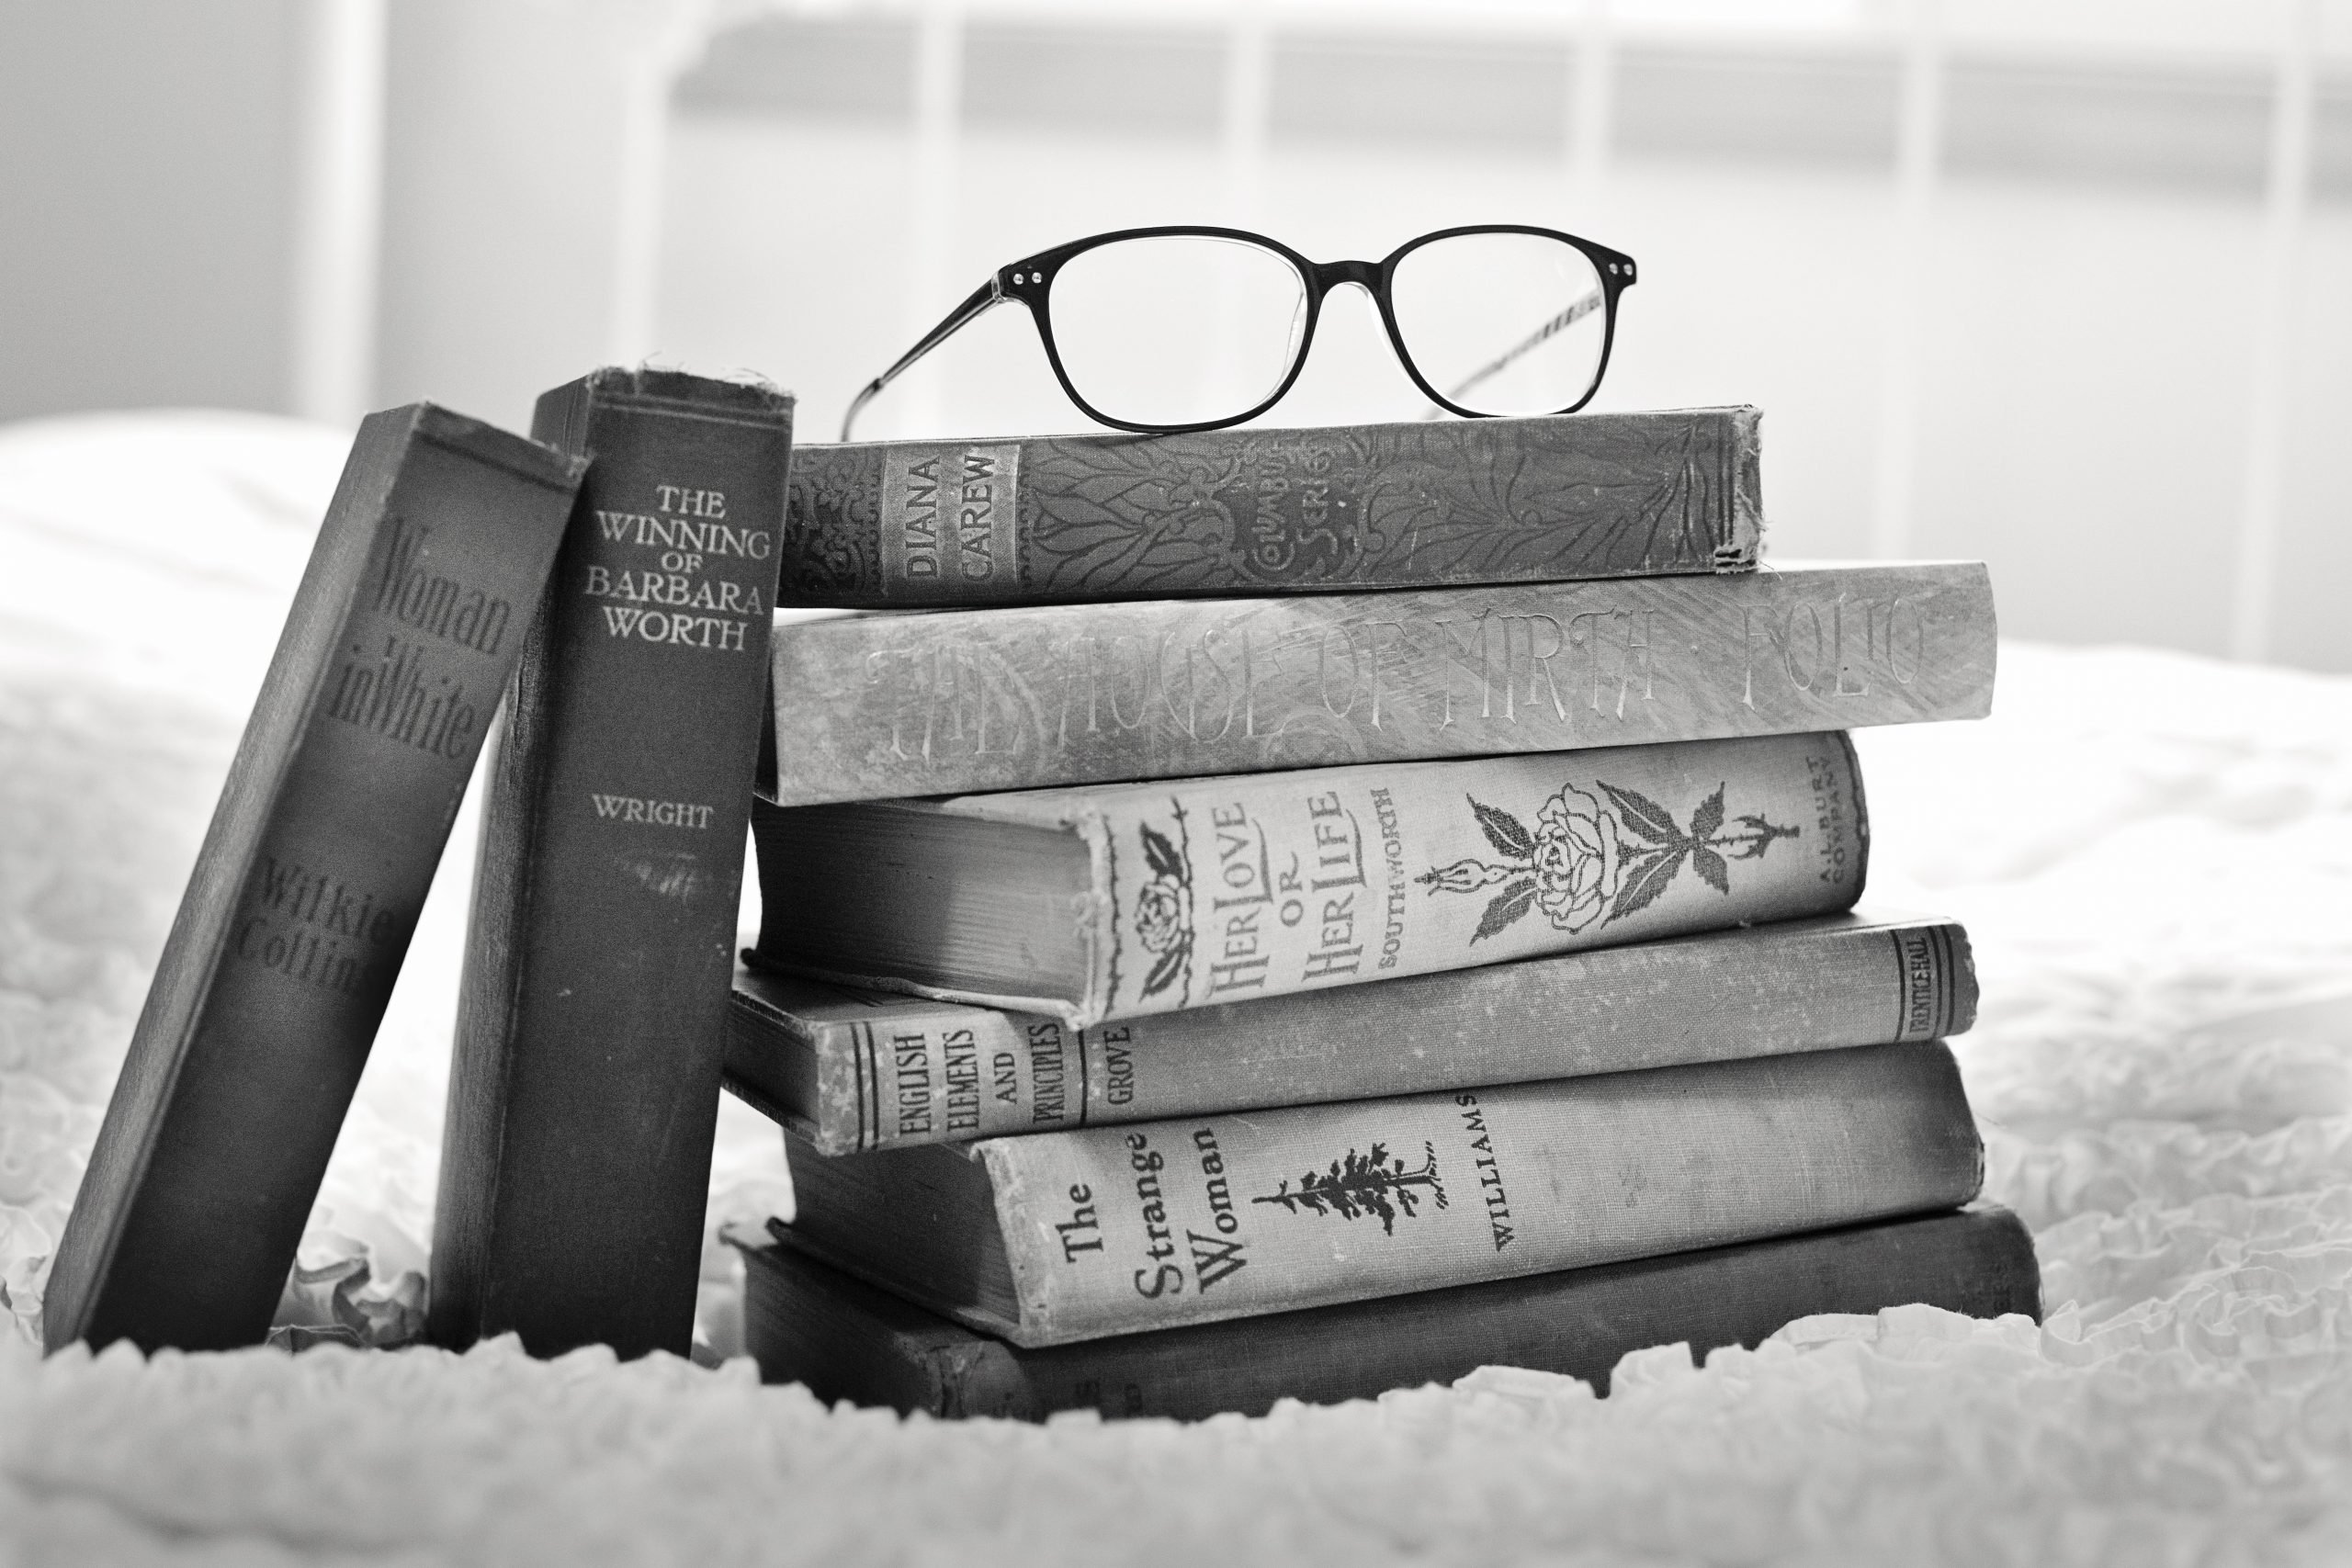 Stack of books with eyeglasses on top - symbolizing resources